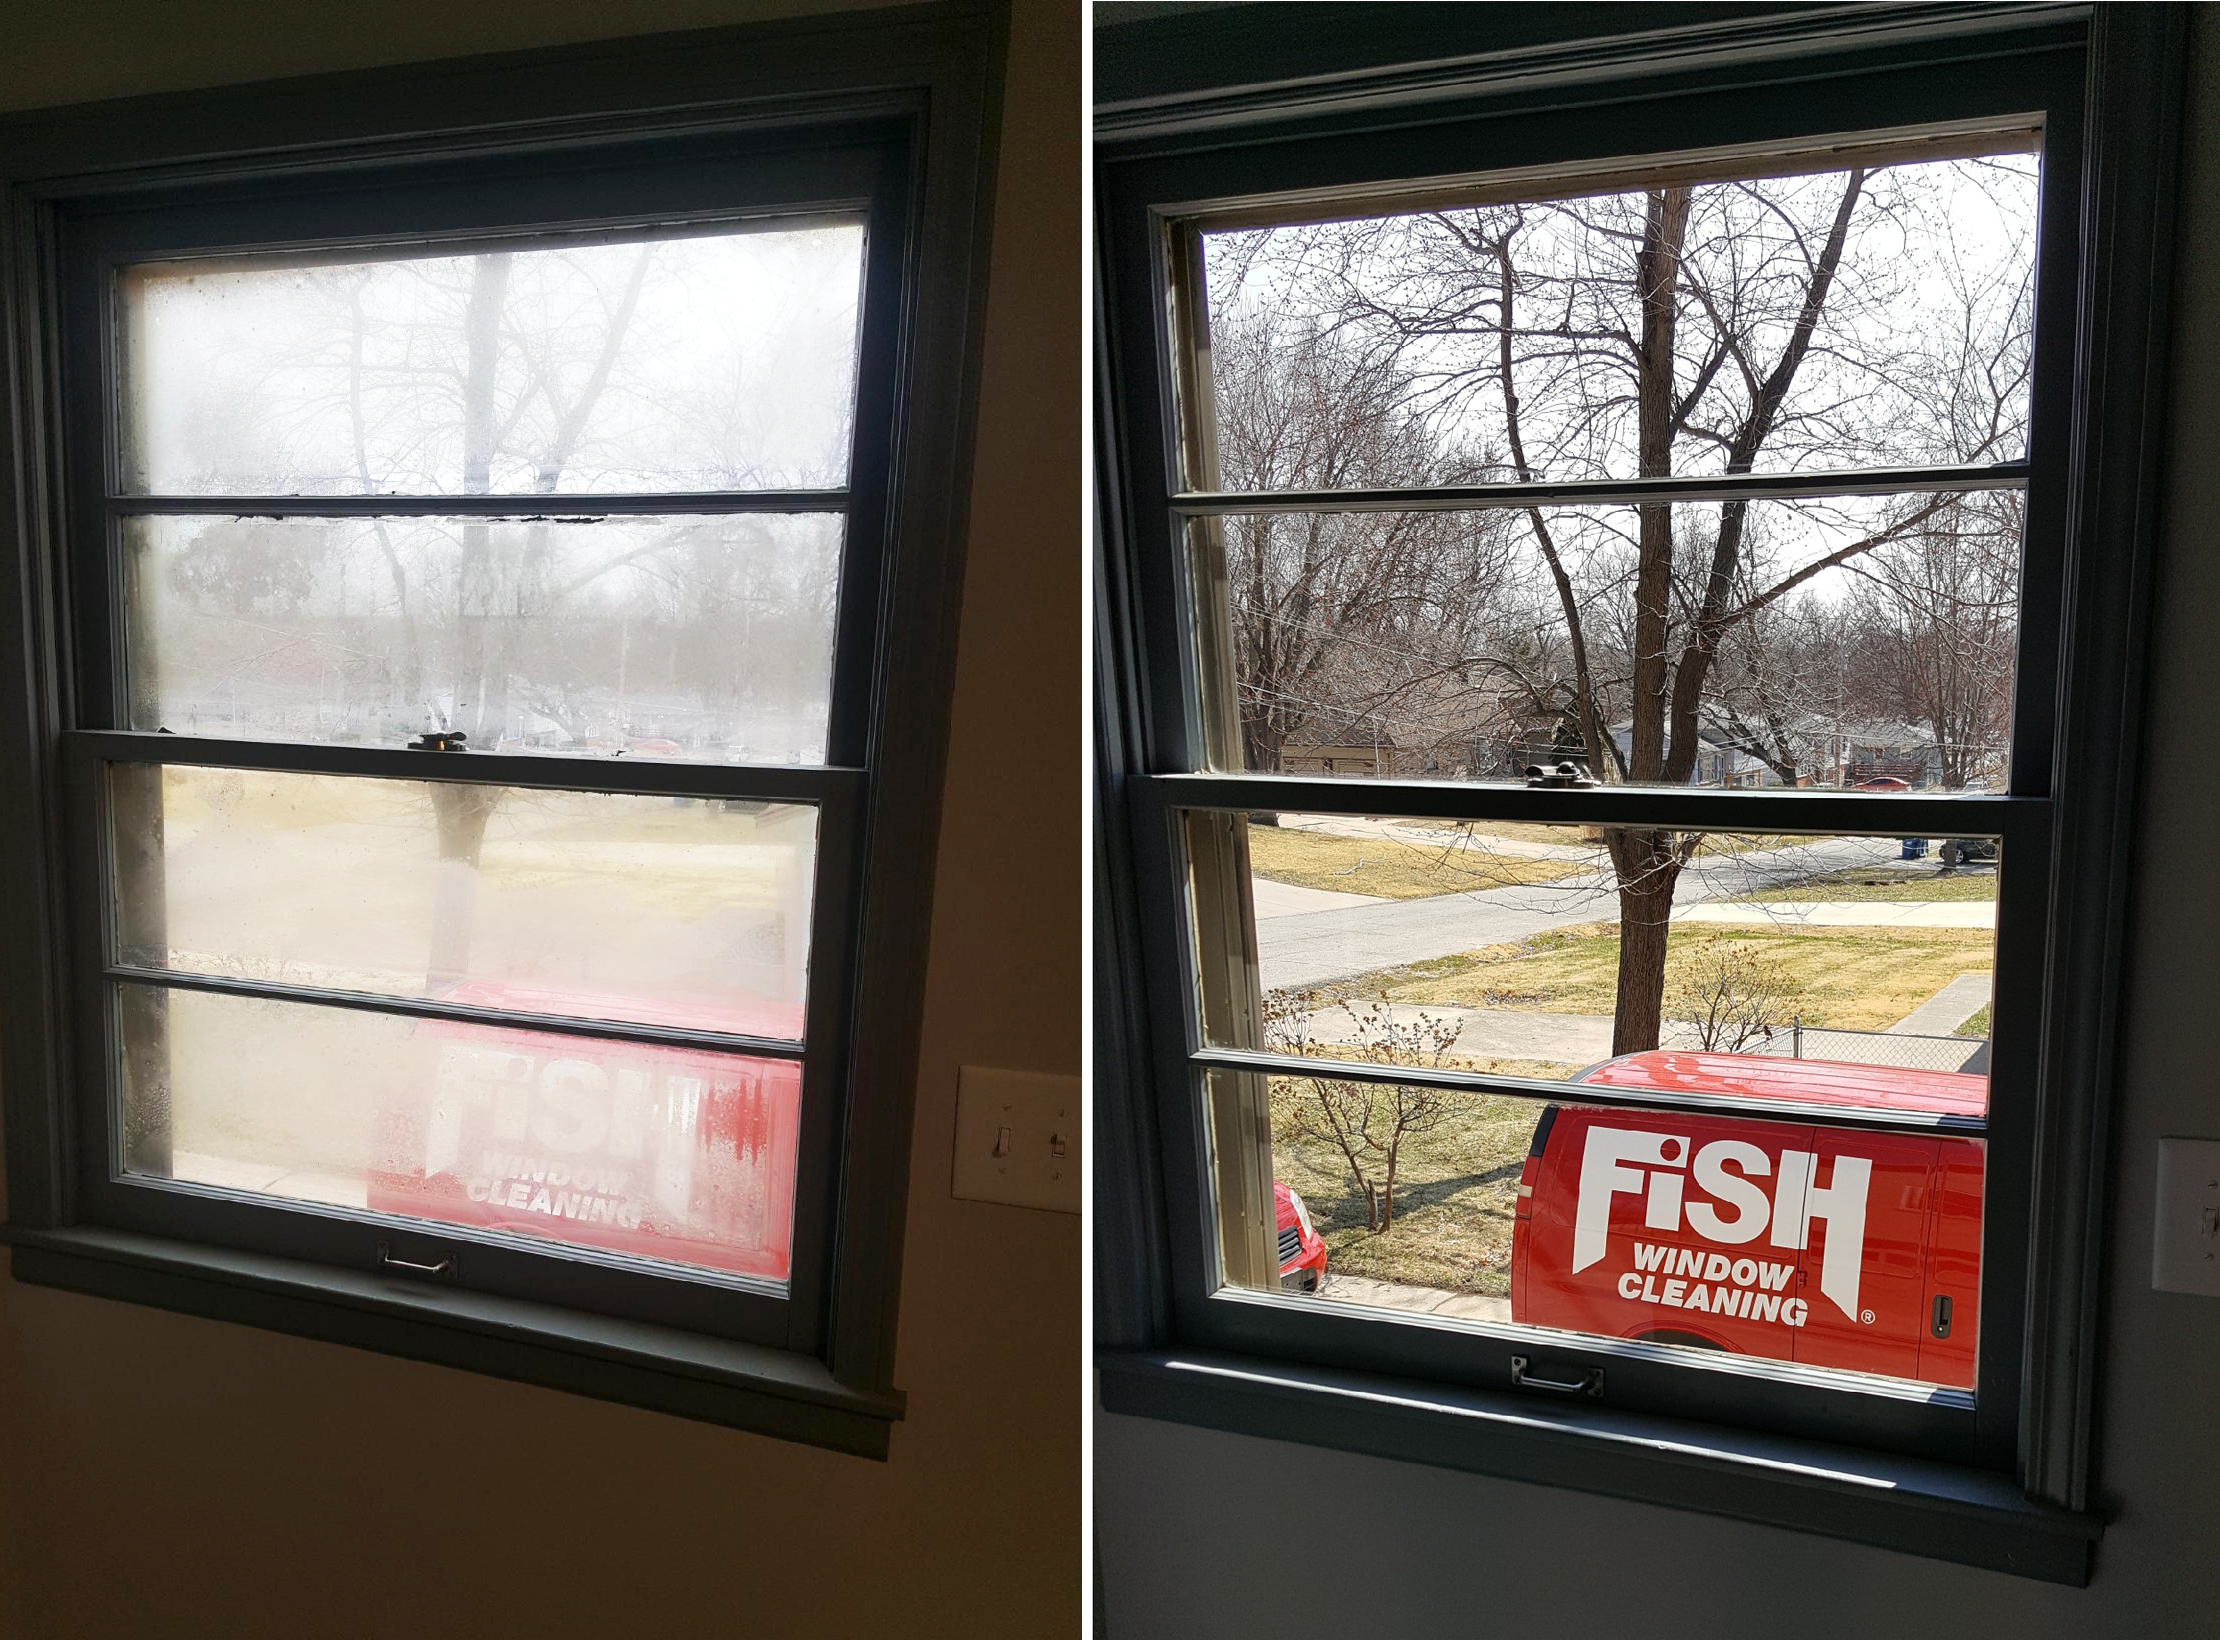 Fish window cleaning photo of fish window cleaning omaha for Fish window cleaning reviews